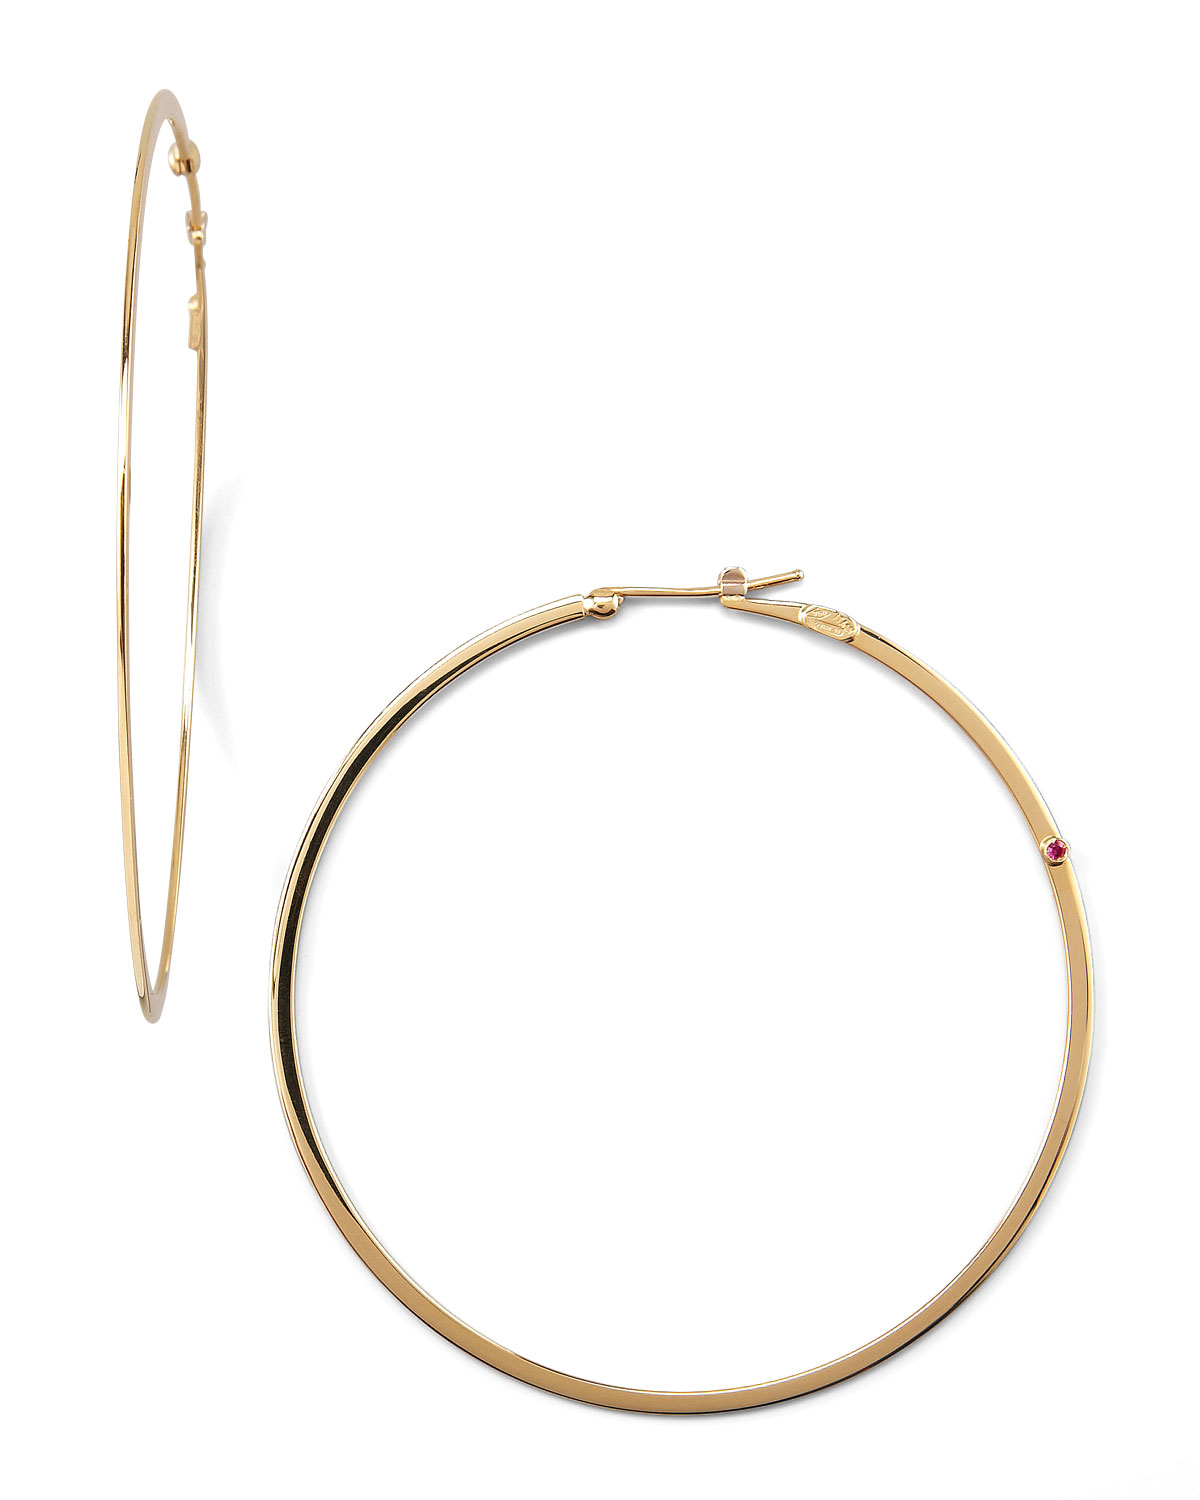 Gallery Previously Sold At Neiman Marcus Women S Gold Hoop Earrings